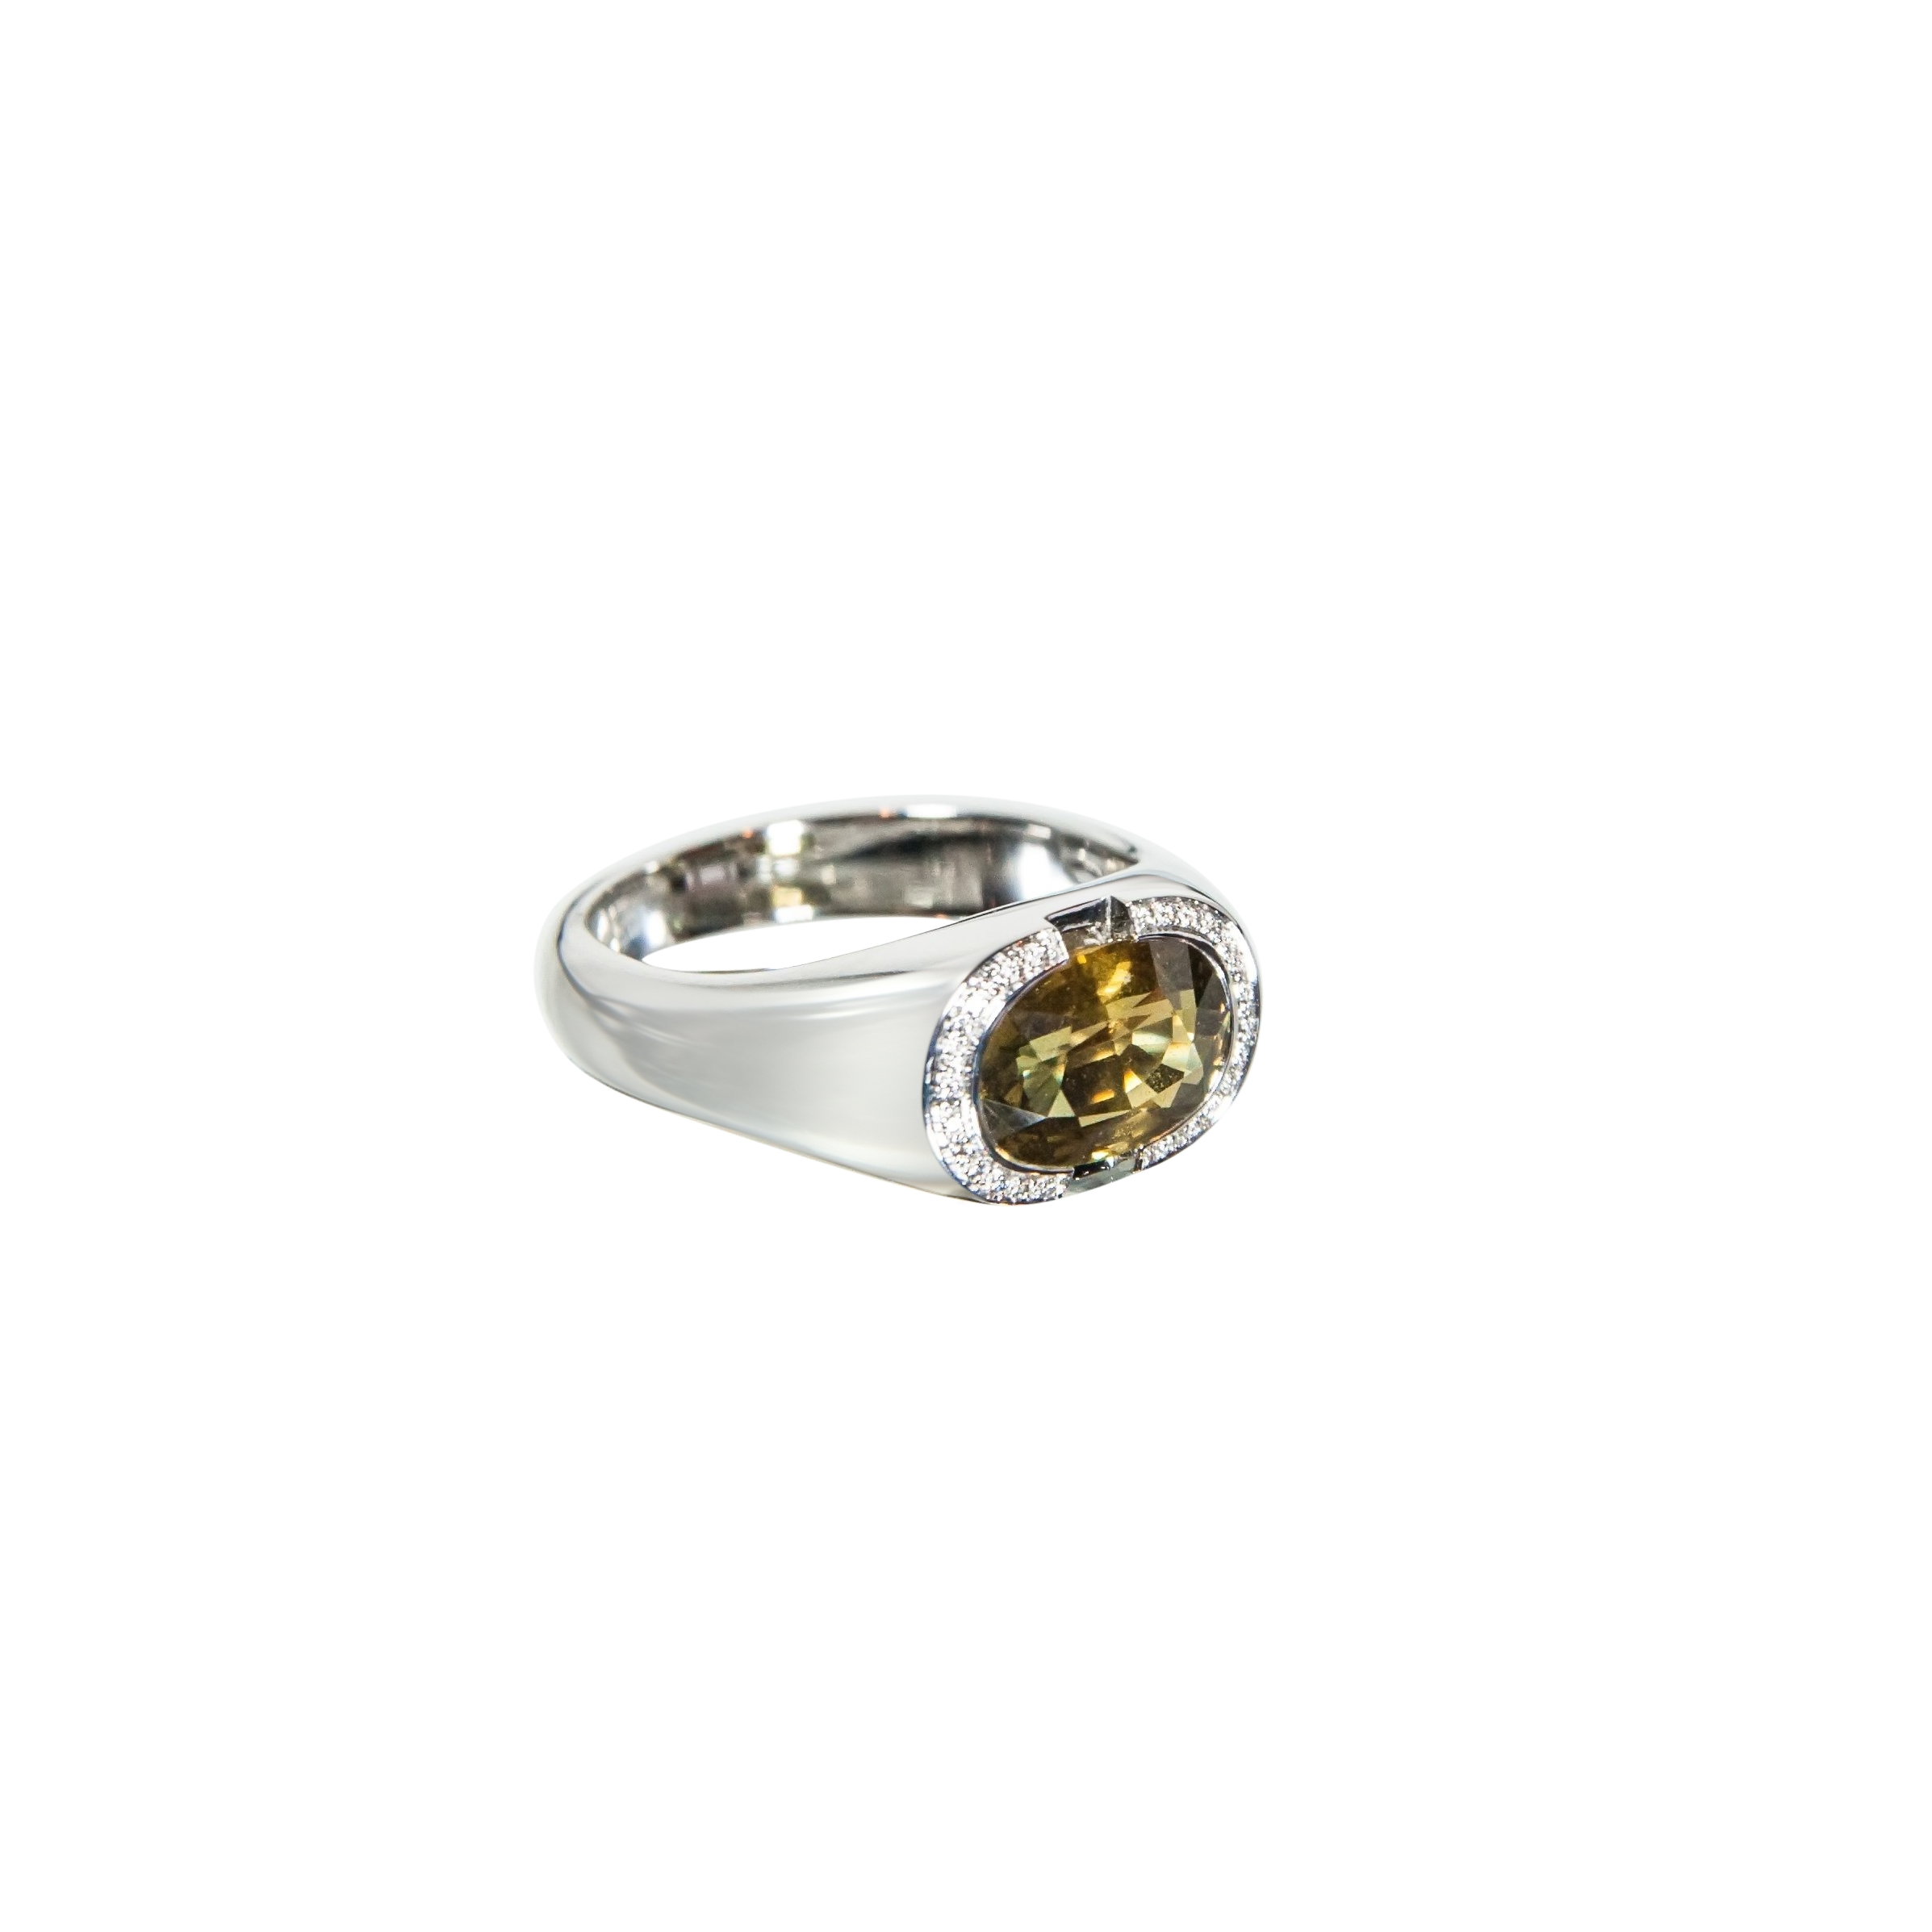 ring band jewelry black webster lovely men thorn bands gold s white in of wedding sapphire idea stephen mens